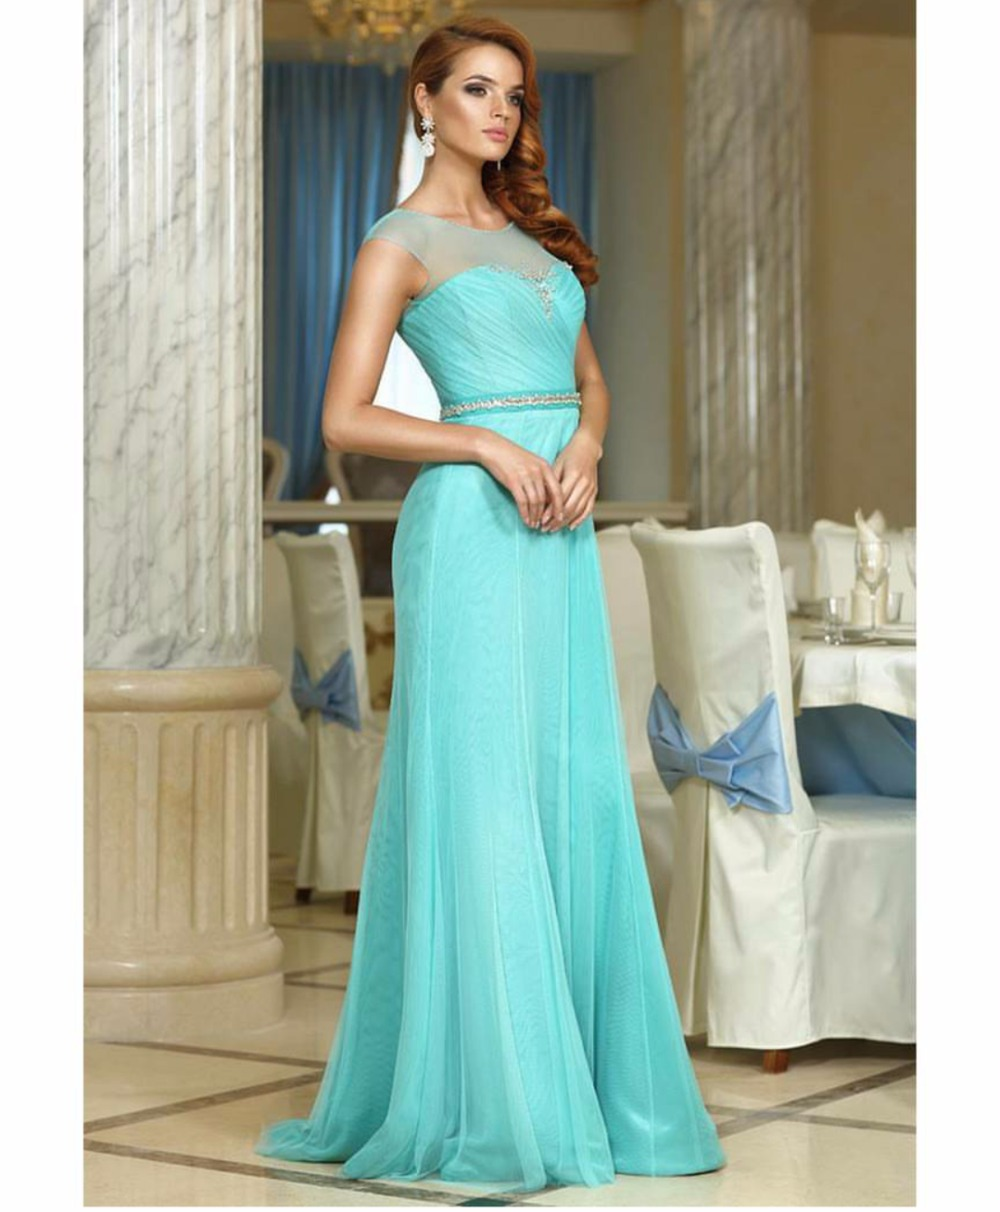 Funky Michael Kors Party Dresses Composition   All Wedding Dresses .